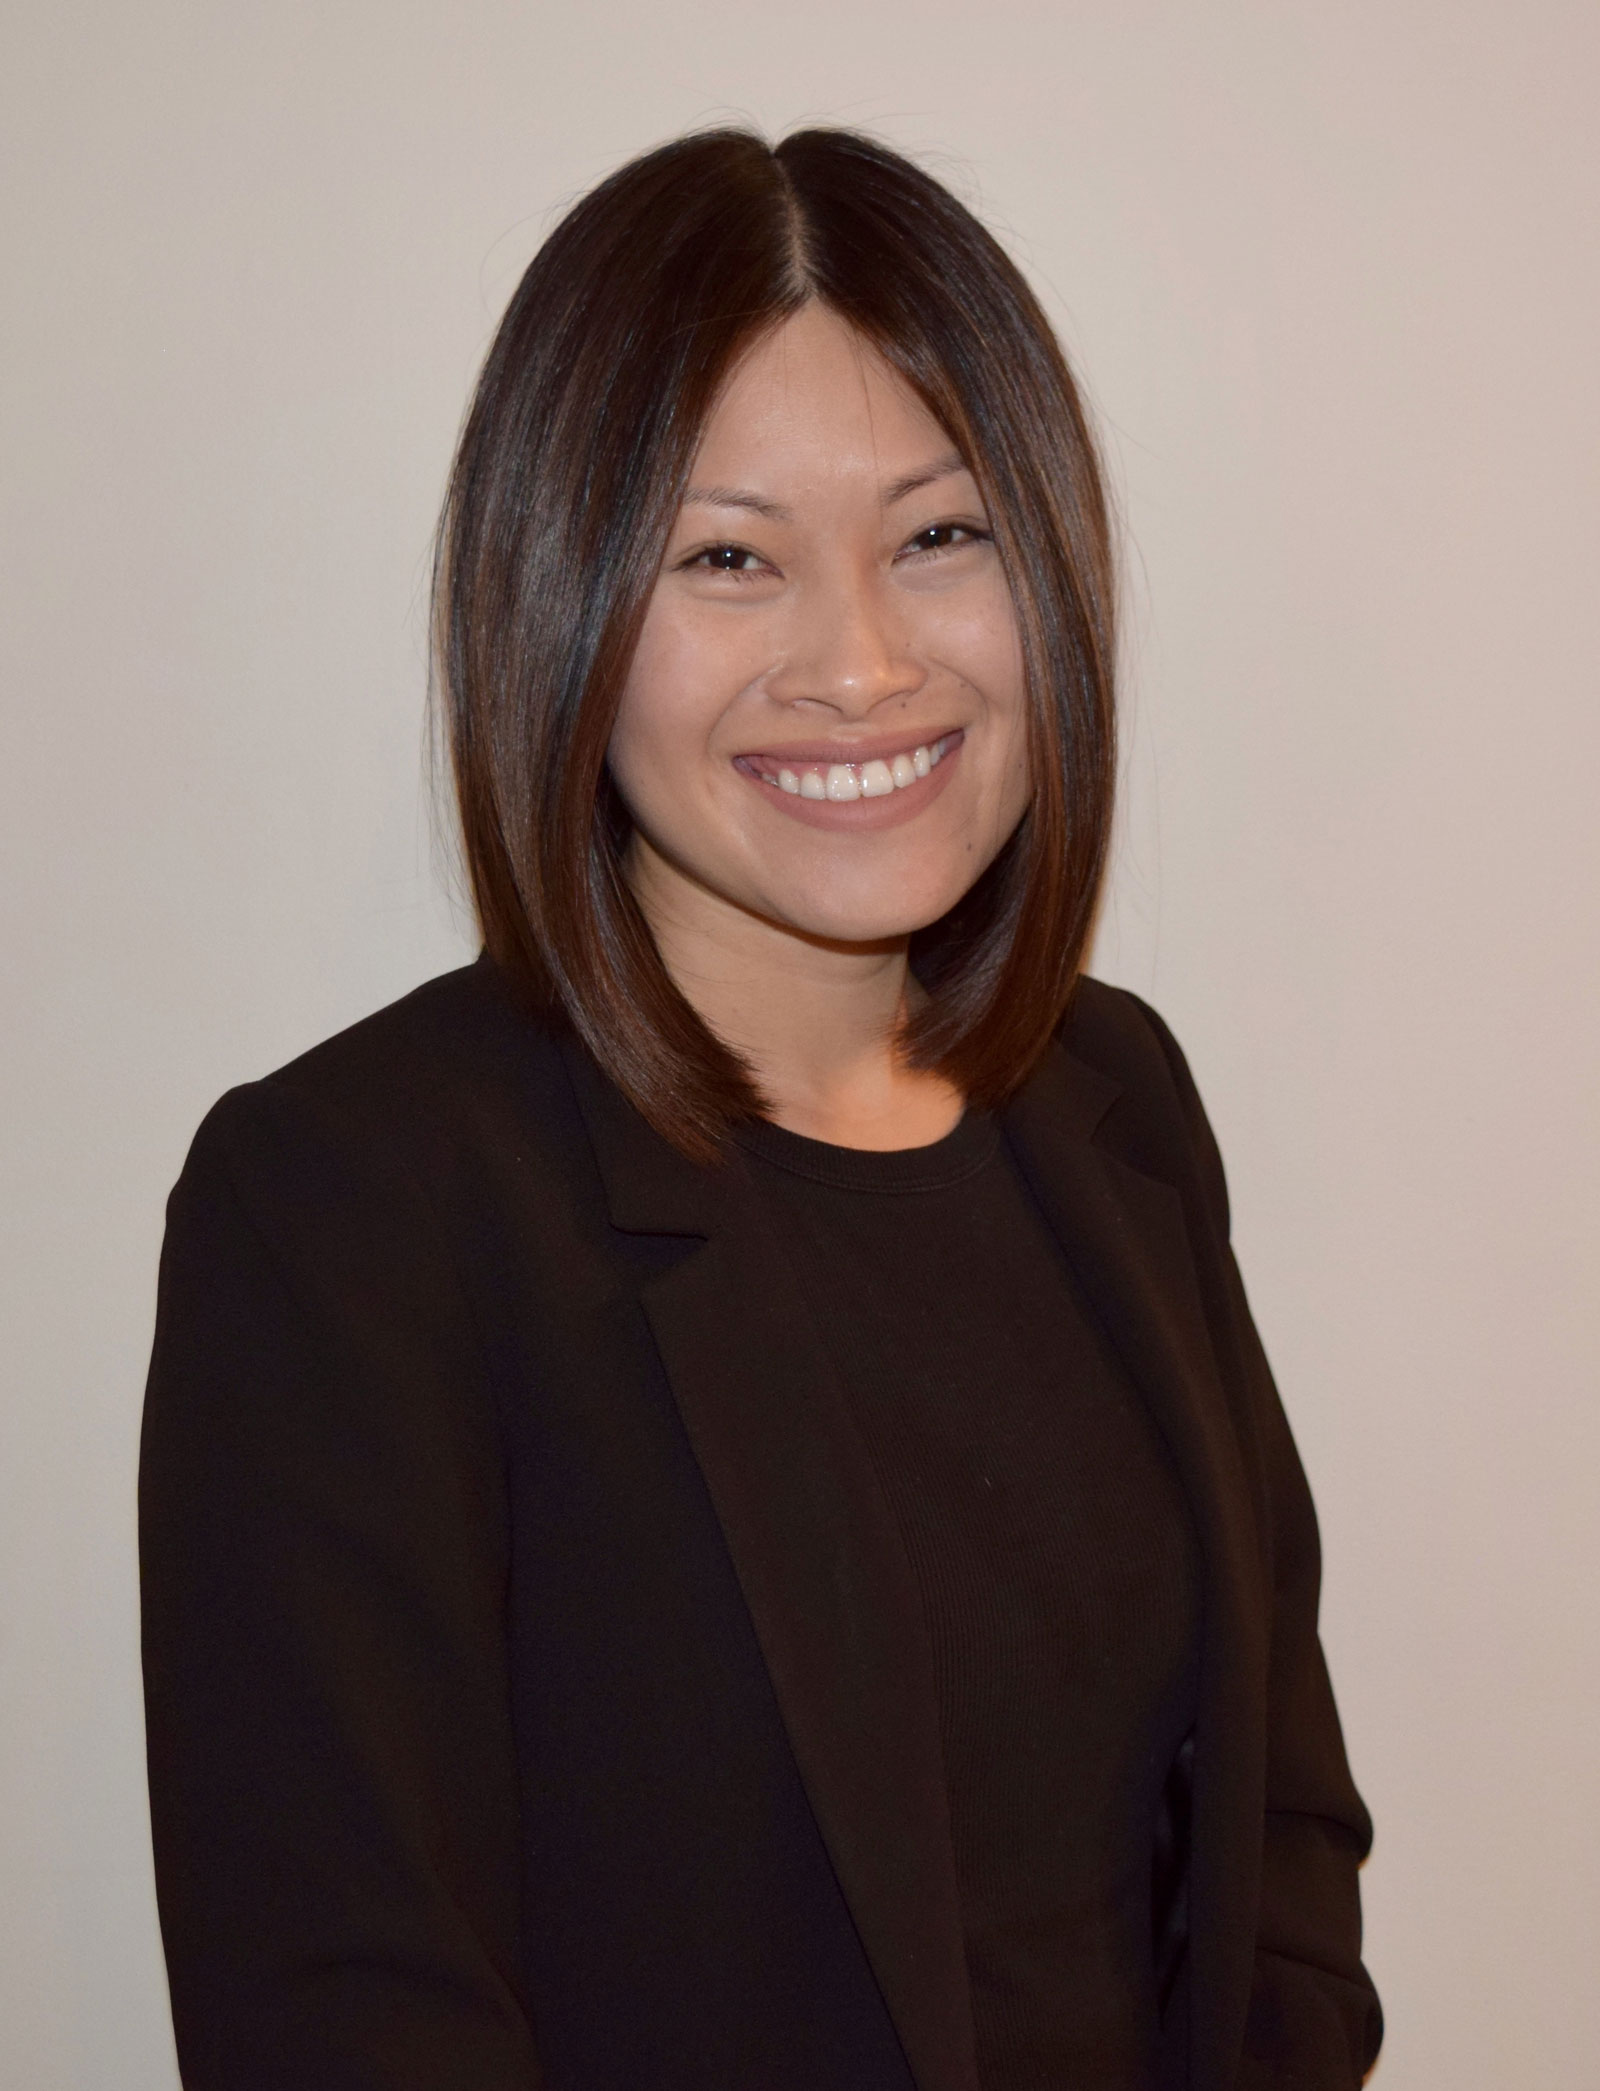 Lilianna Phan, Ph.D.